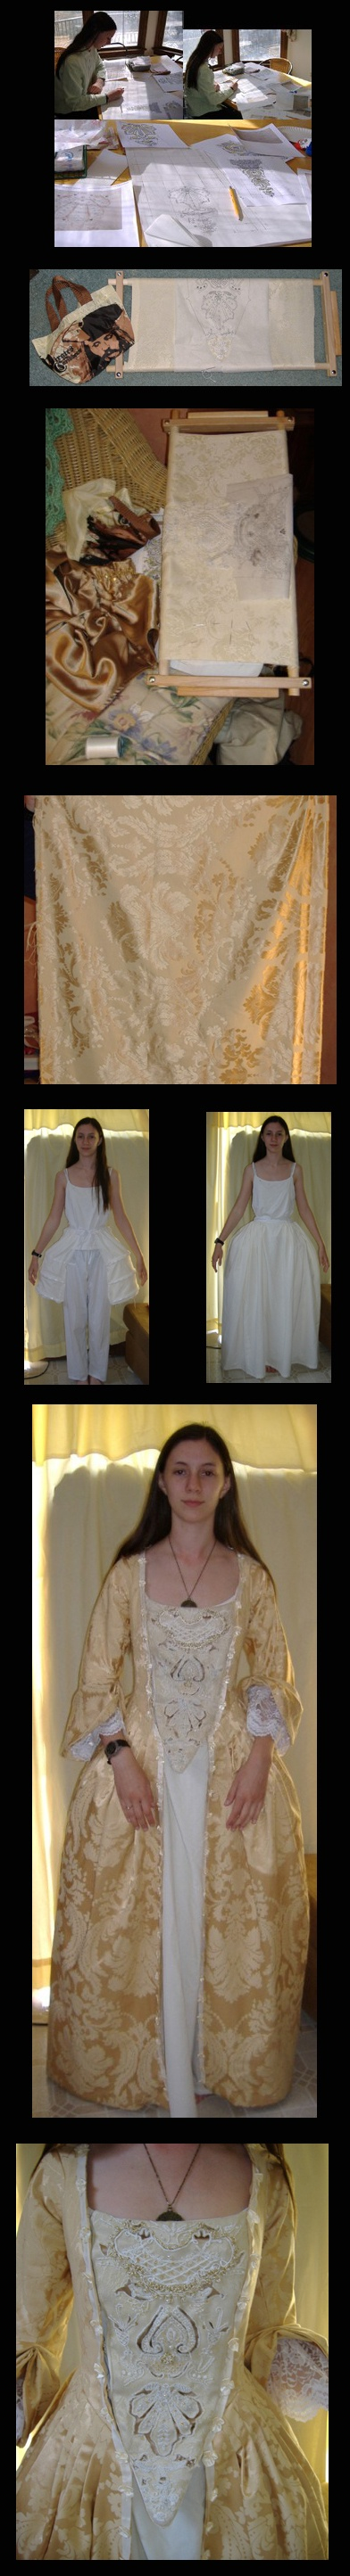 Making my Elizabeth Swann Gold Gown movie costume from Pirates of the Caribbean: Curse of the Black Pearl. I used The Costumer's Guide to Movie Costumes (http://costumersguide.com/pirates_gold.shtml) and Anna/Naboo-Girl's excellent stomacher pattern which you can find here: http://www.eastofthewoods.com/c-elizstomacher.html (no longer available - she can be contacted at anna.osterwald@gmail.com) I used iron-on tear-away transfer paper to embroider it. I had a lot of help from my mom on this…